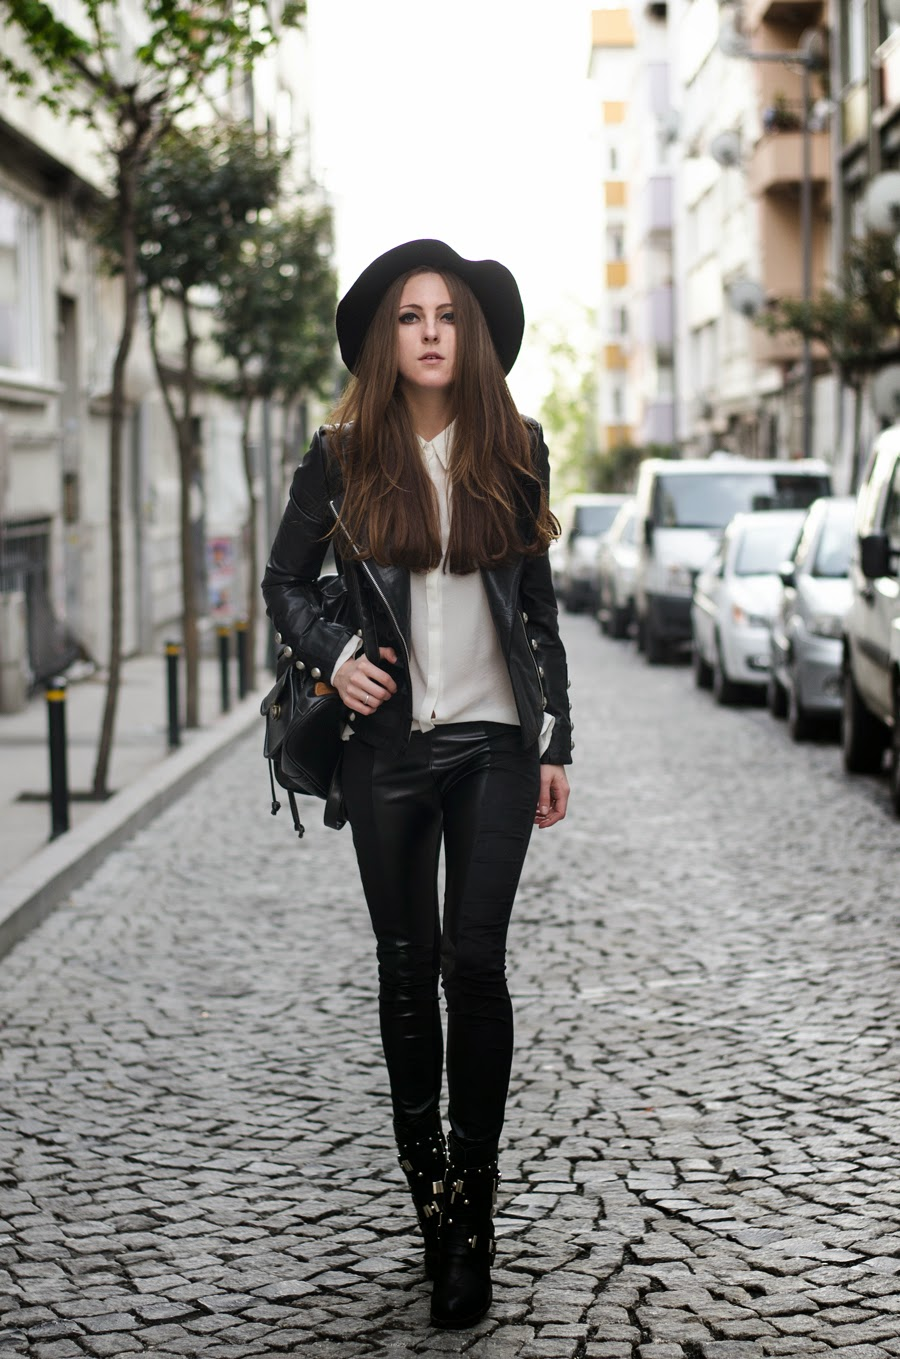 istanbul street style, russian fashion blogger , leather jacket outfit, rocker girl outfit, fedora and long hair, fashion details, spring 2014 trends, neon rock katerina k